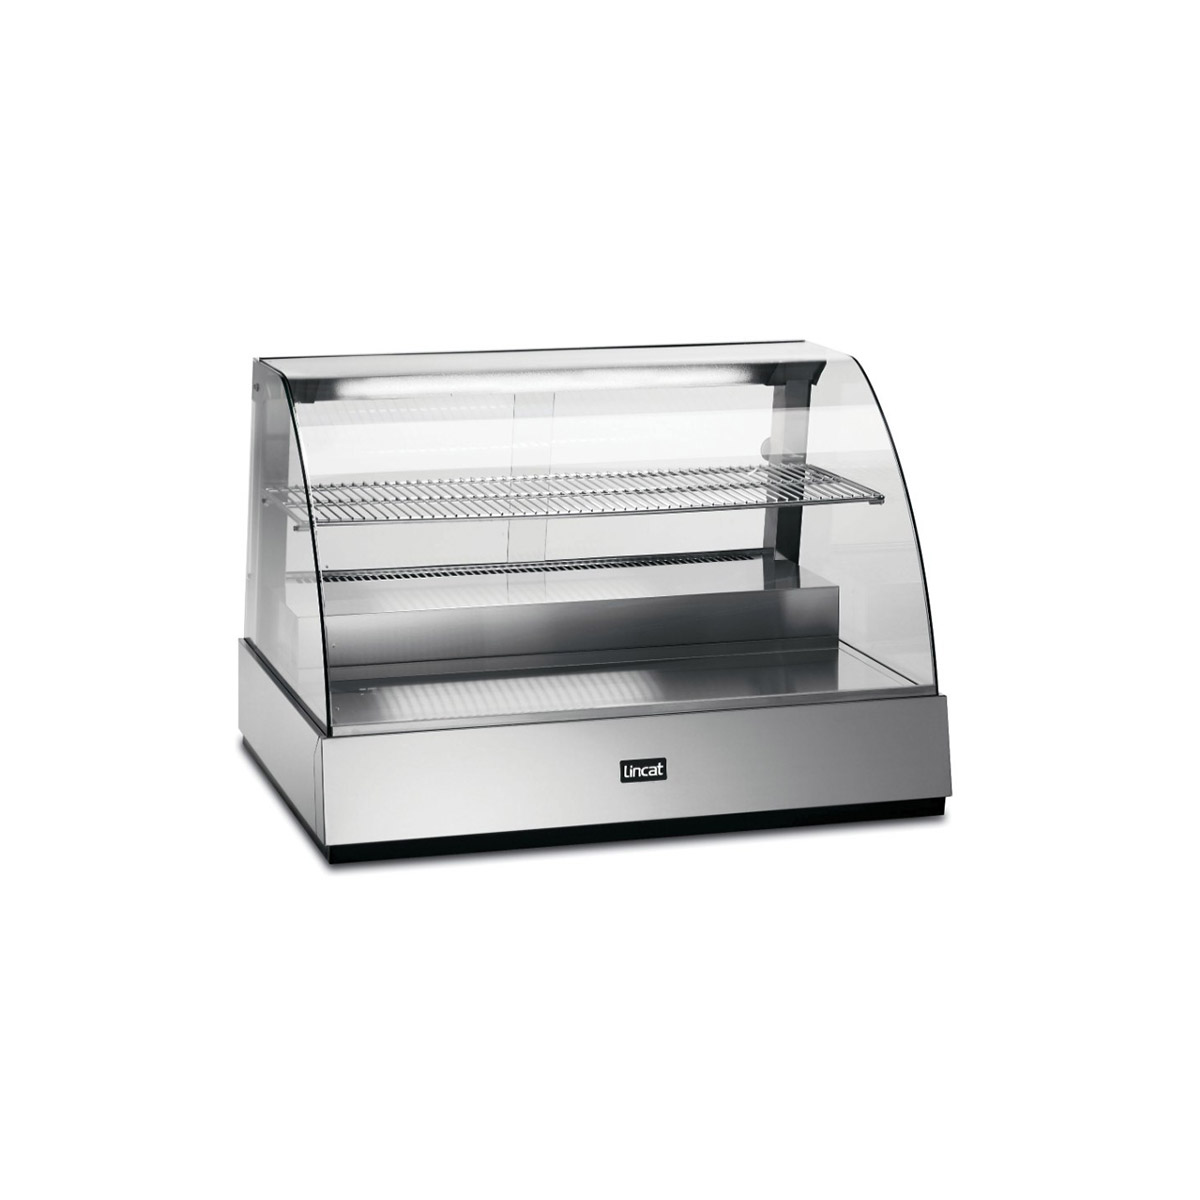 SCR1085 - Lincat Seal Counter-top Refrigerated Food Display Showcase - W 1085 mm - 0.621 kW